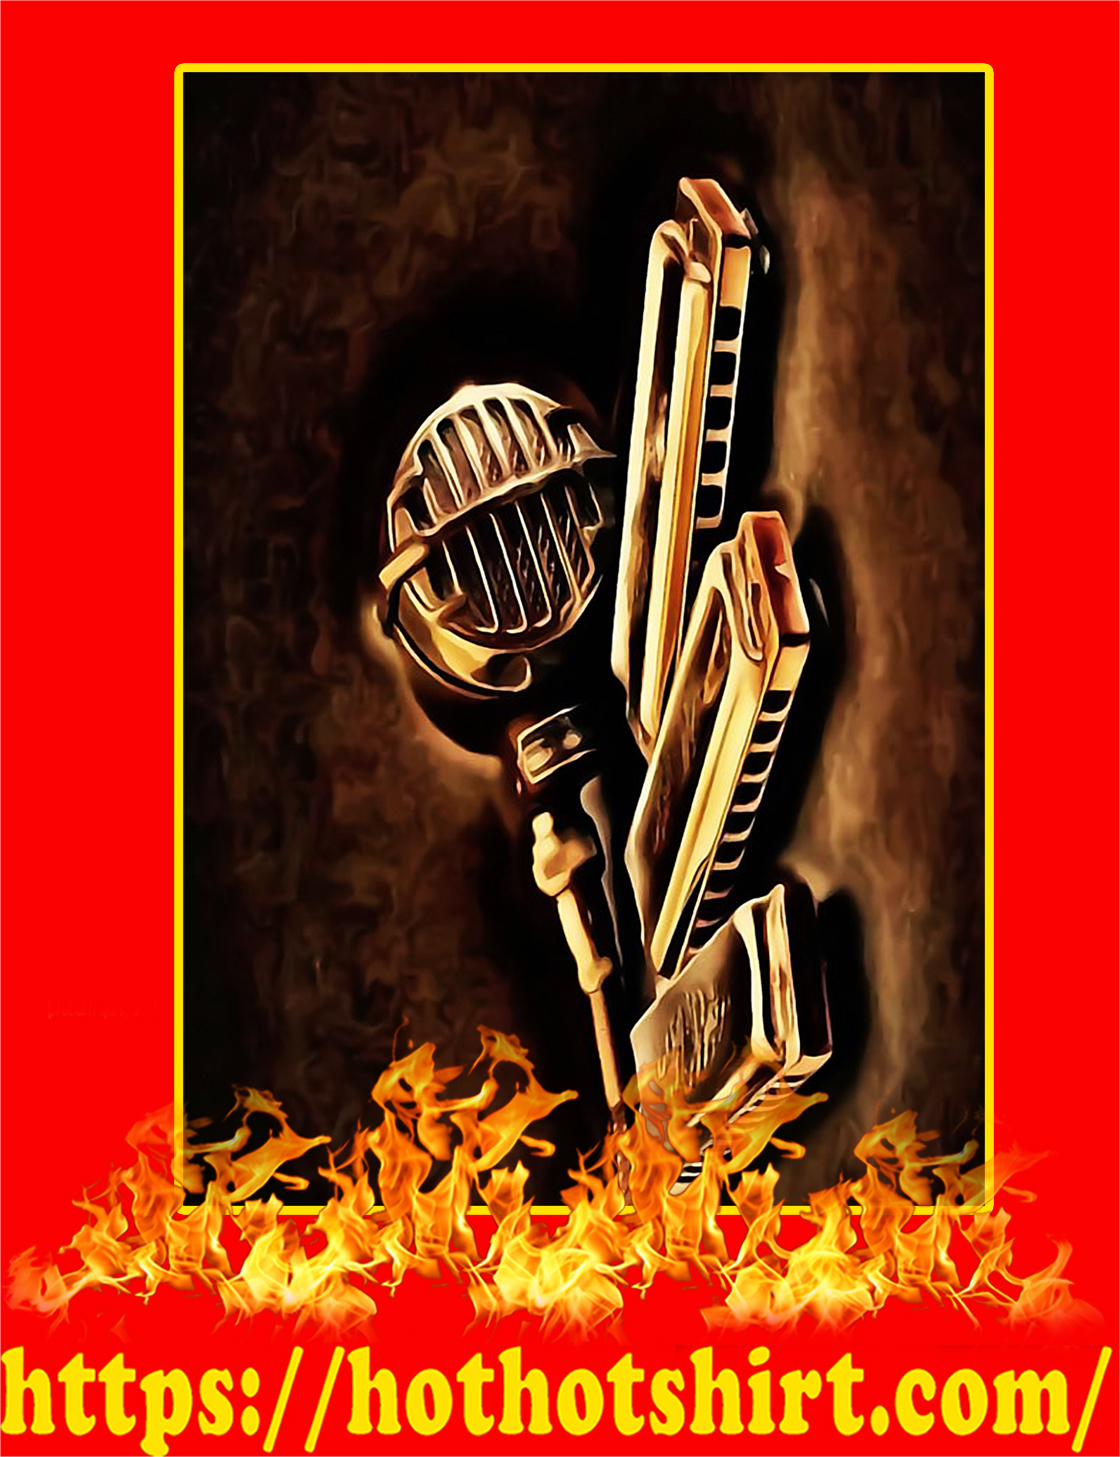 Harmonica Vintage Poster - A3